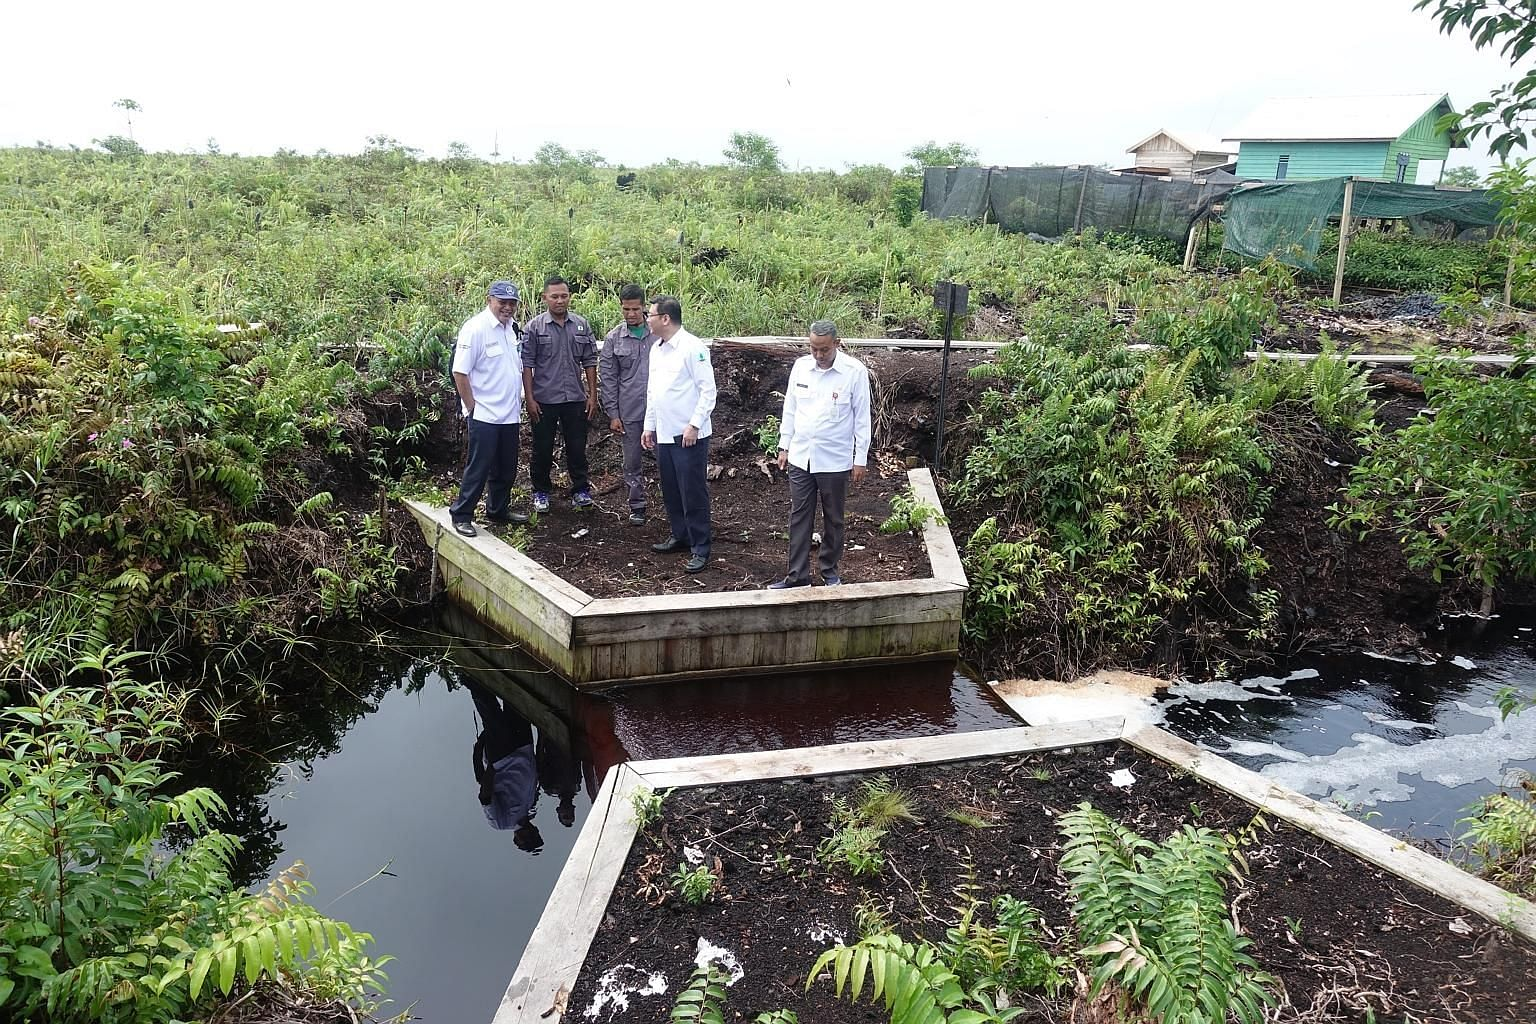 Peatland Restoration Agency head Nazir Foead (centre in white shirt), with other officials, inspecting a dam at a peatland drainage canal in Seponjen, South Sumatra, which was badly burned during the 2015 fires that blanketed the region in haze.